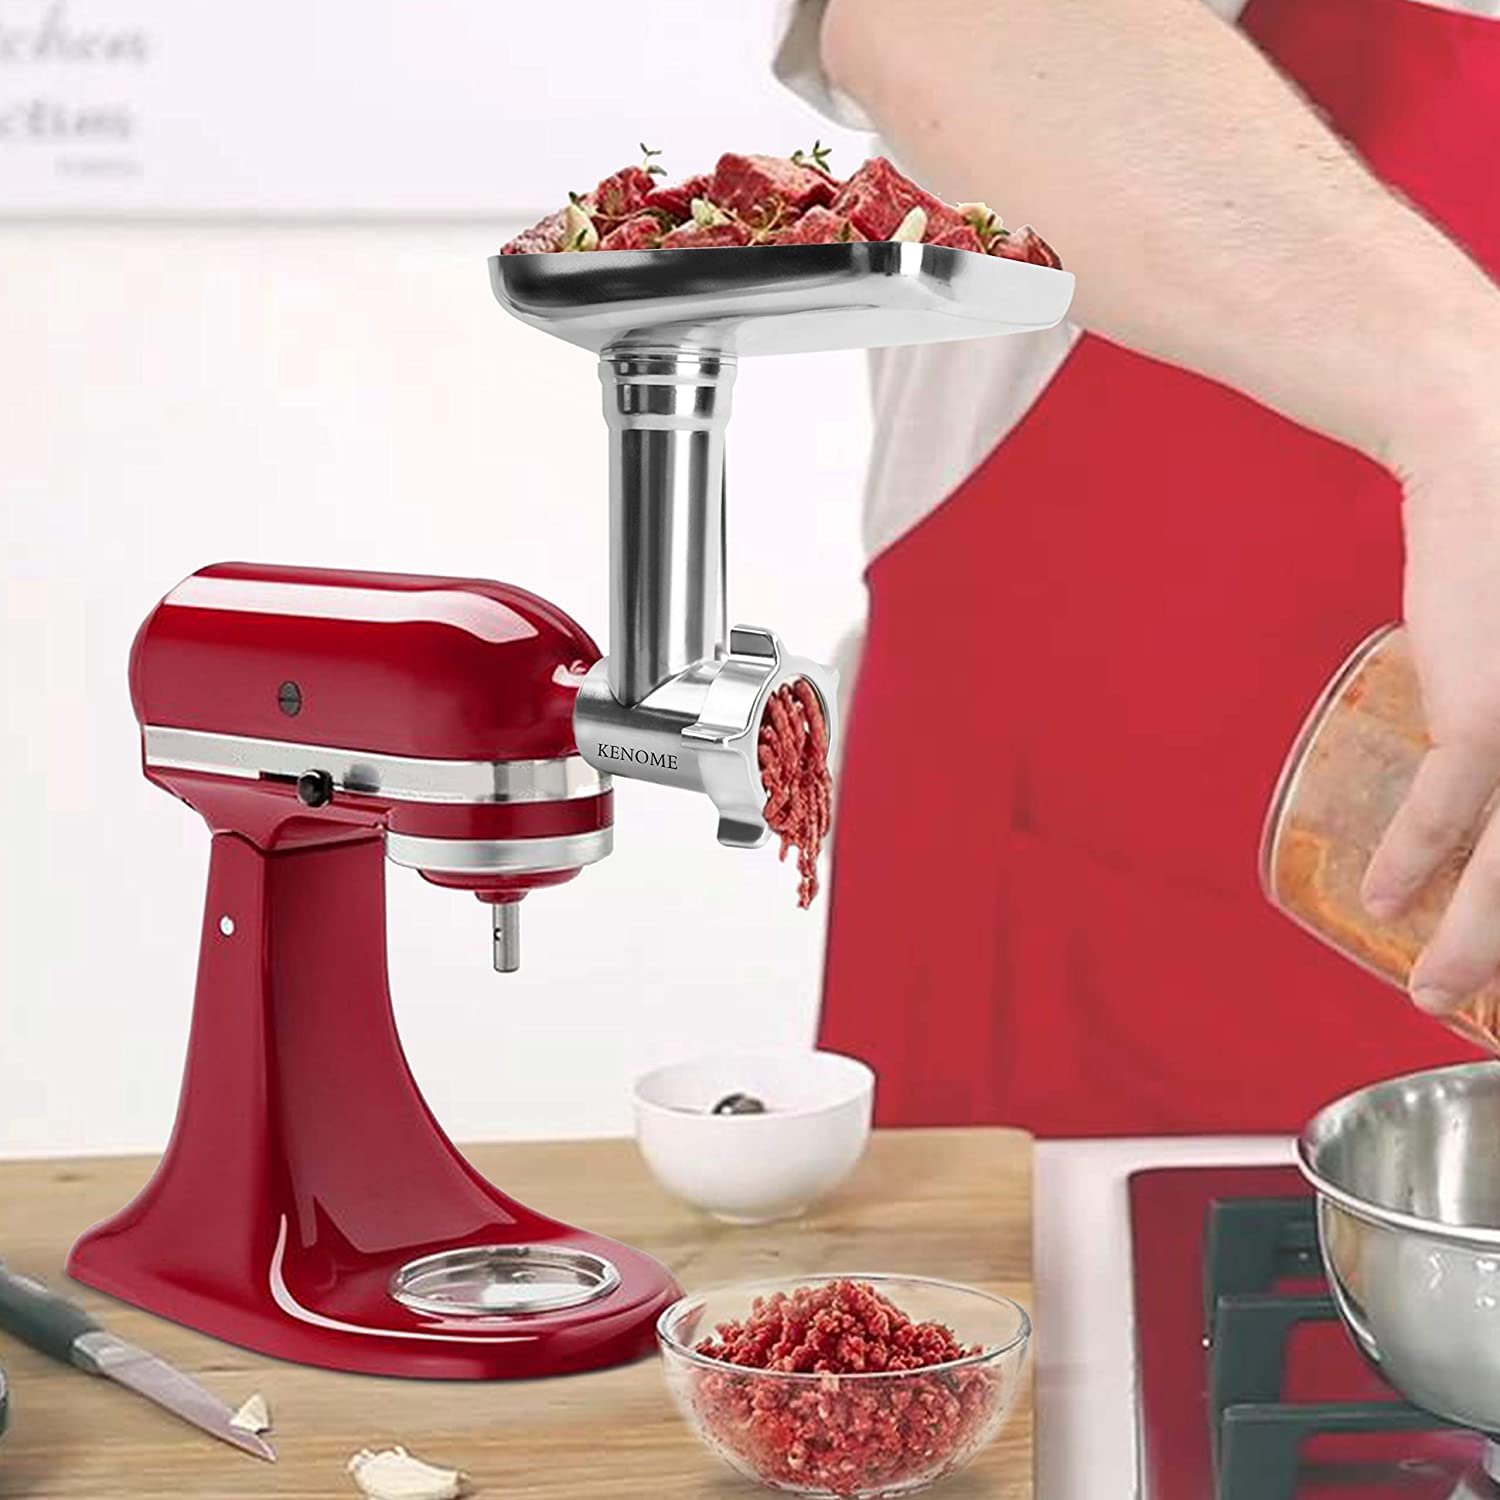 Metal Food Grinder Attachment for KitchenAid Stand Mixers Includes 2 Sausage Stuffer TubesDurable